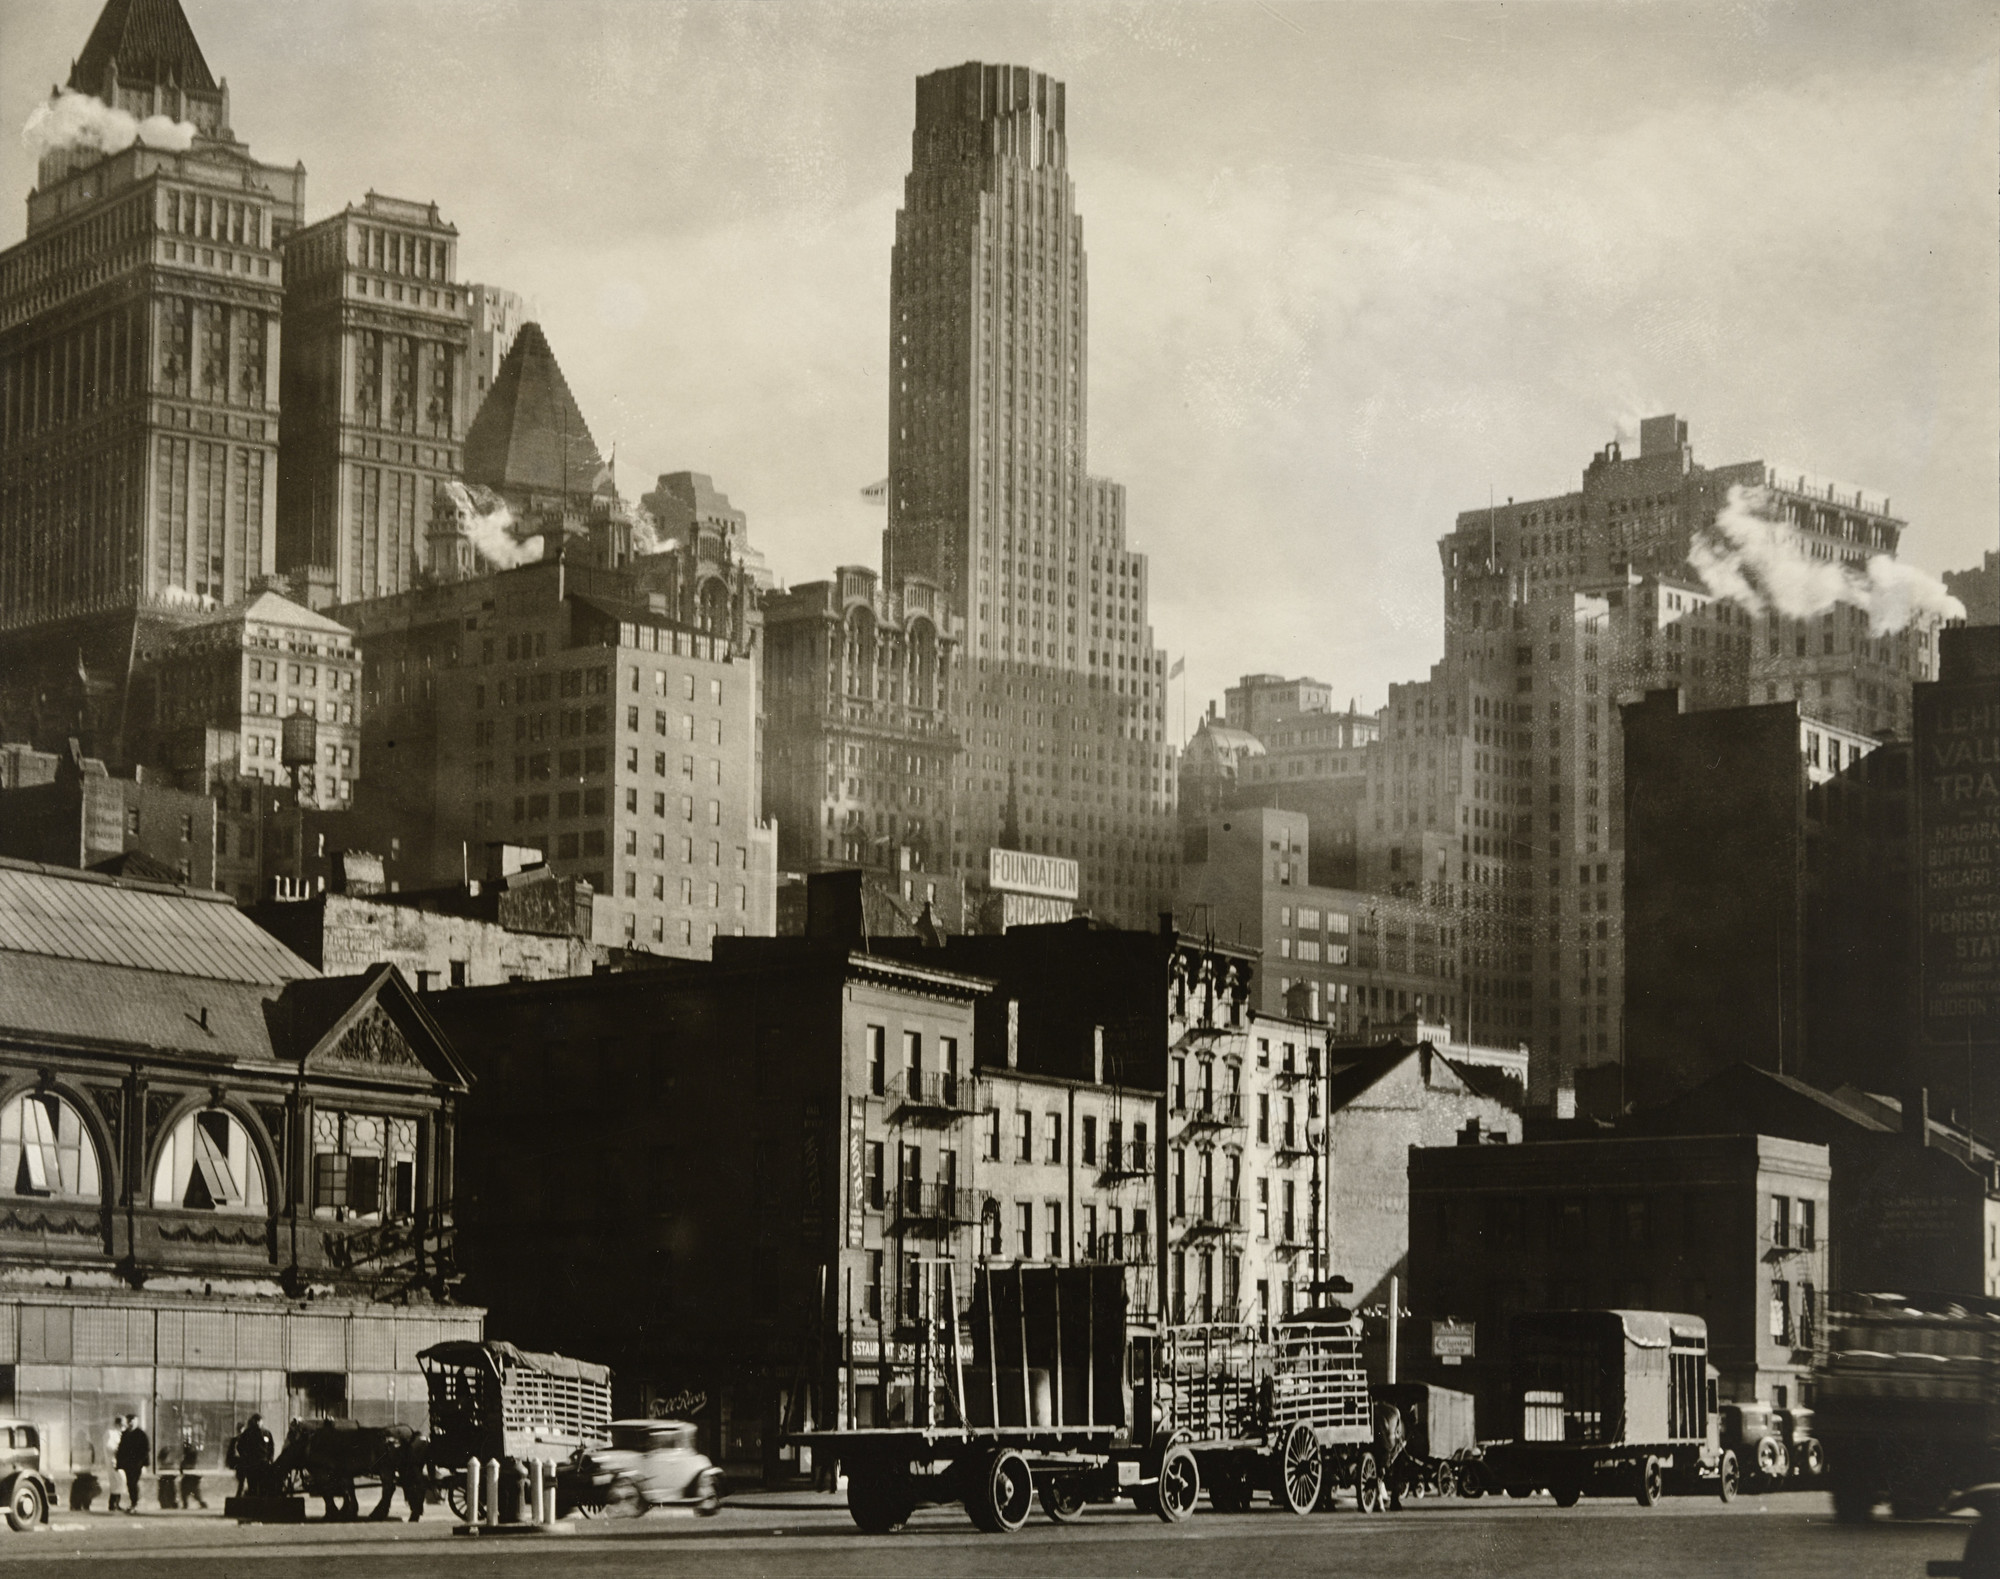 Berenice Abbott. View from West Street, Manhattan. March 23, 1938